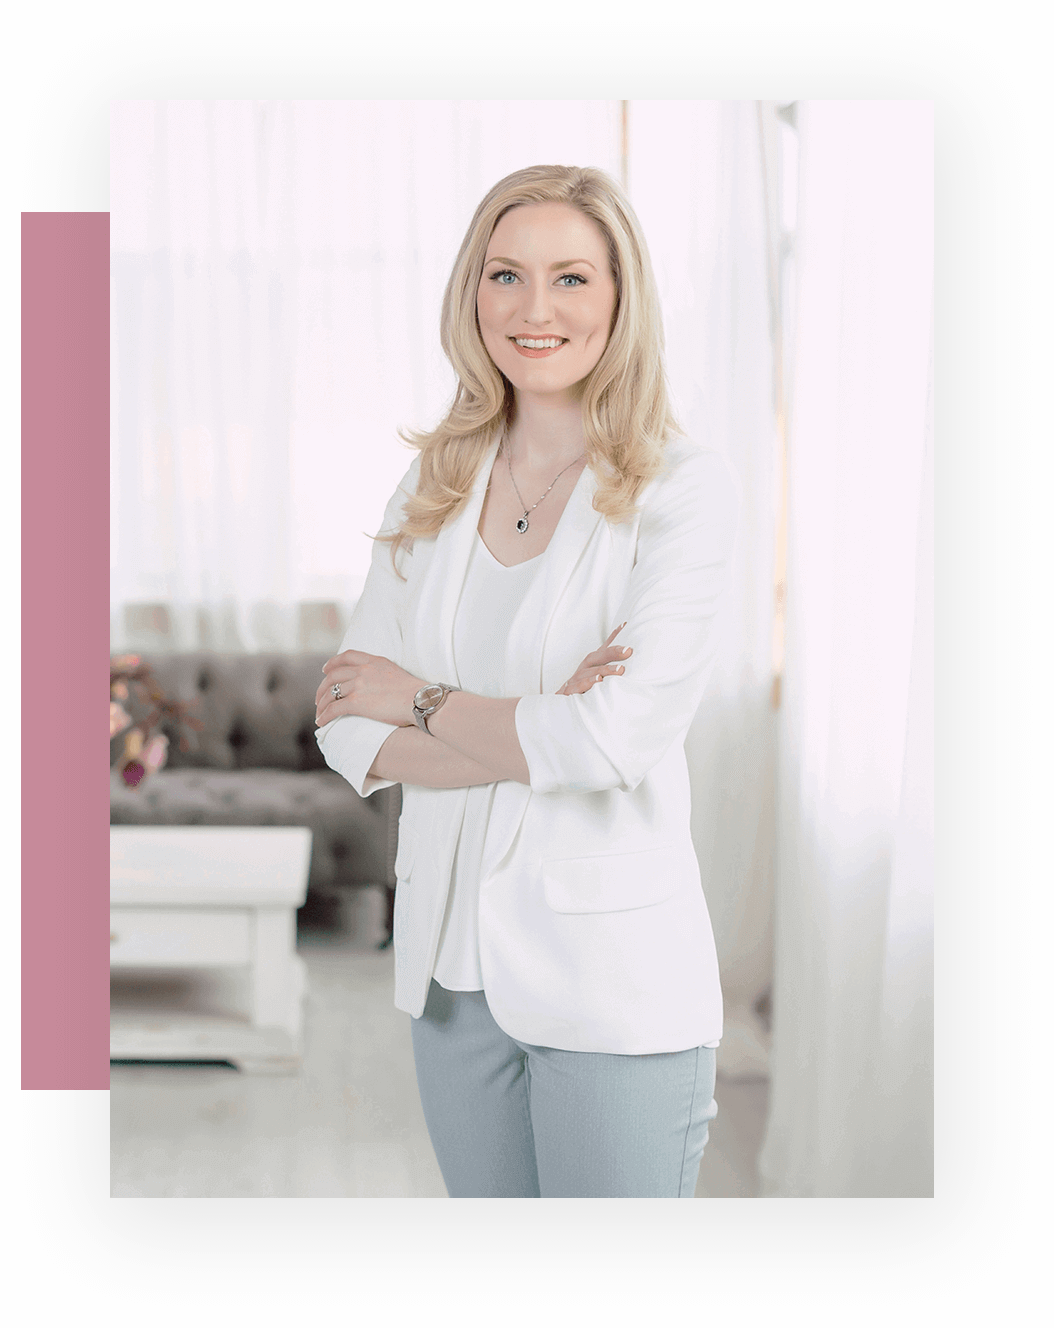 Naturopathic Doctor - Dr. Leah Richadson ND